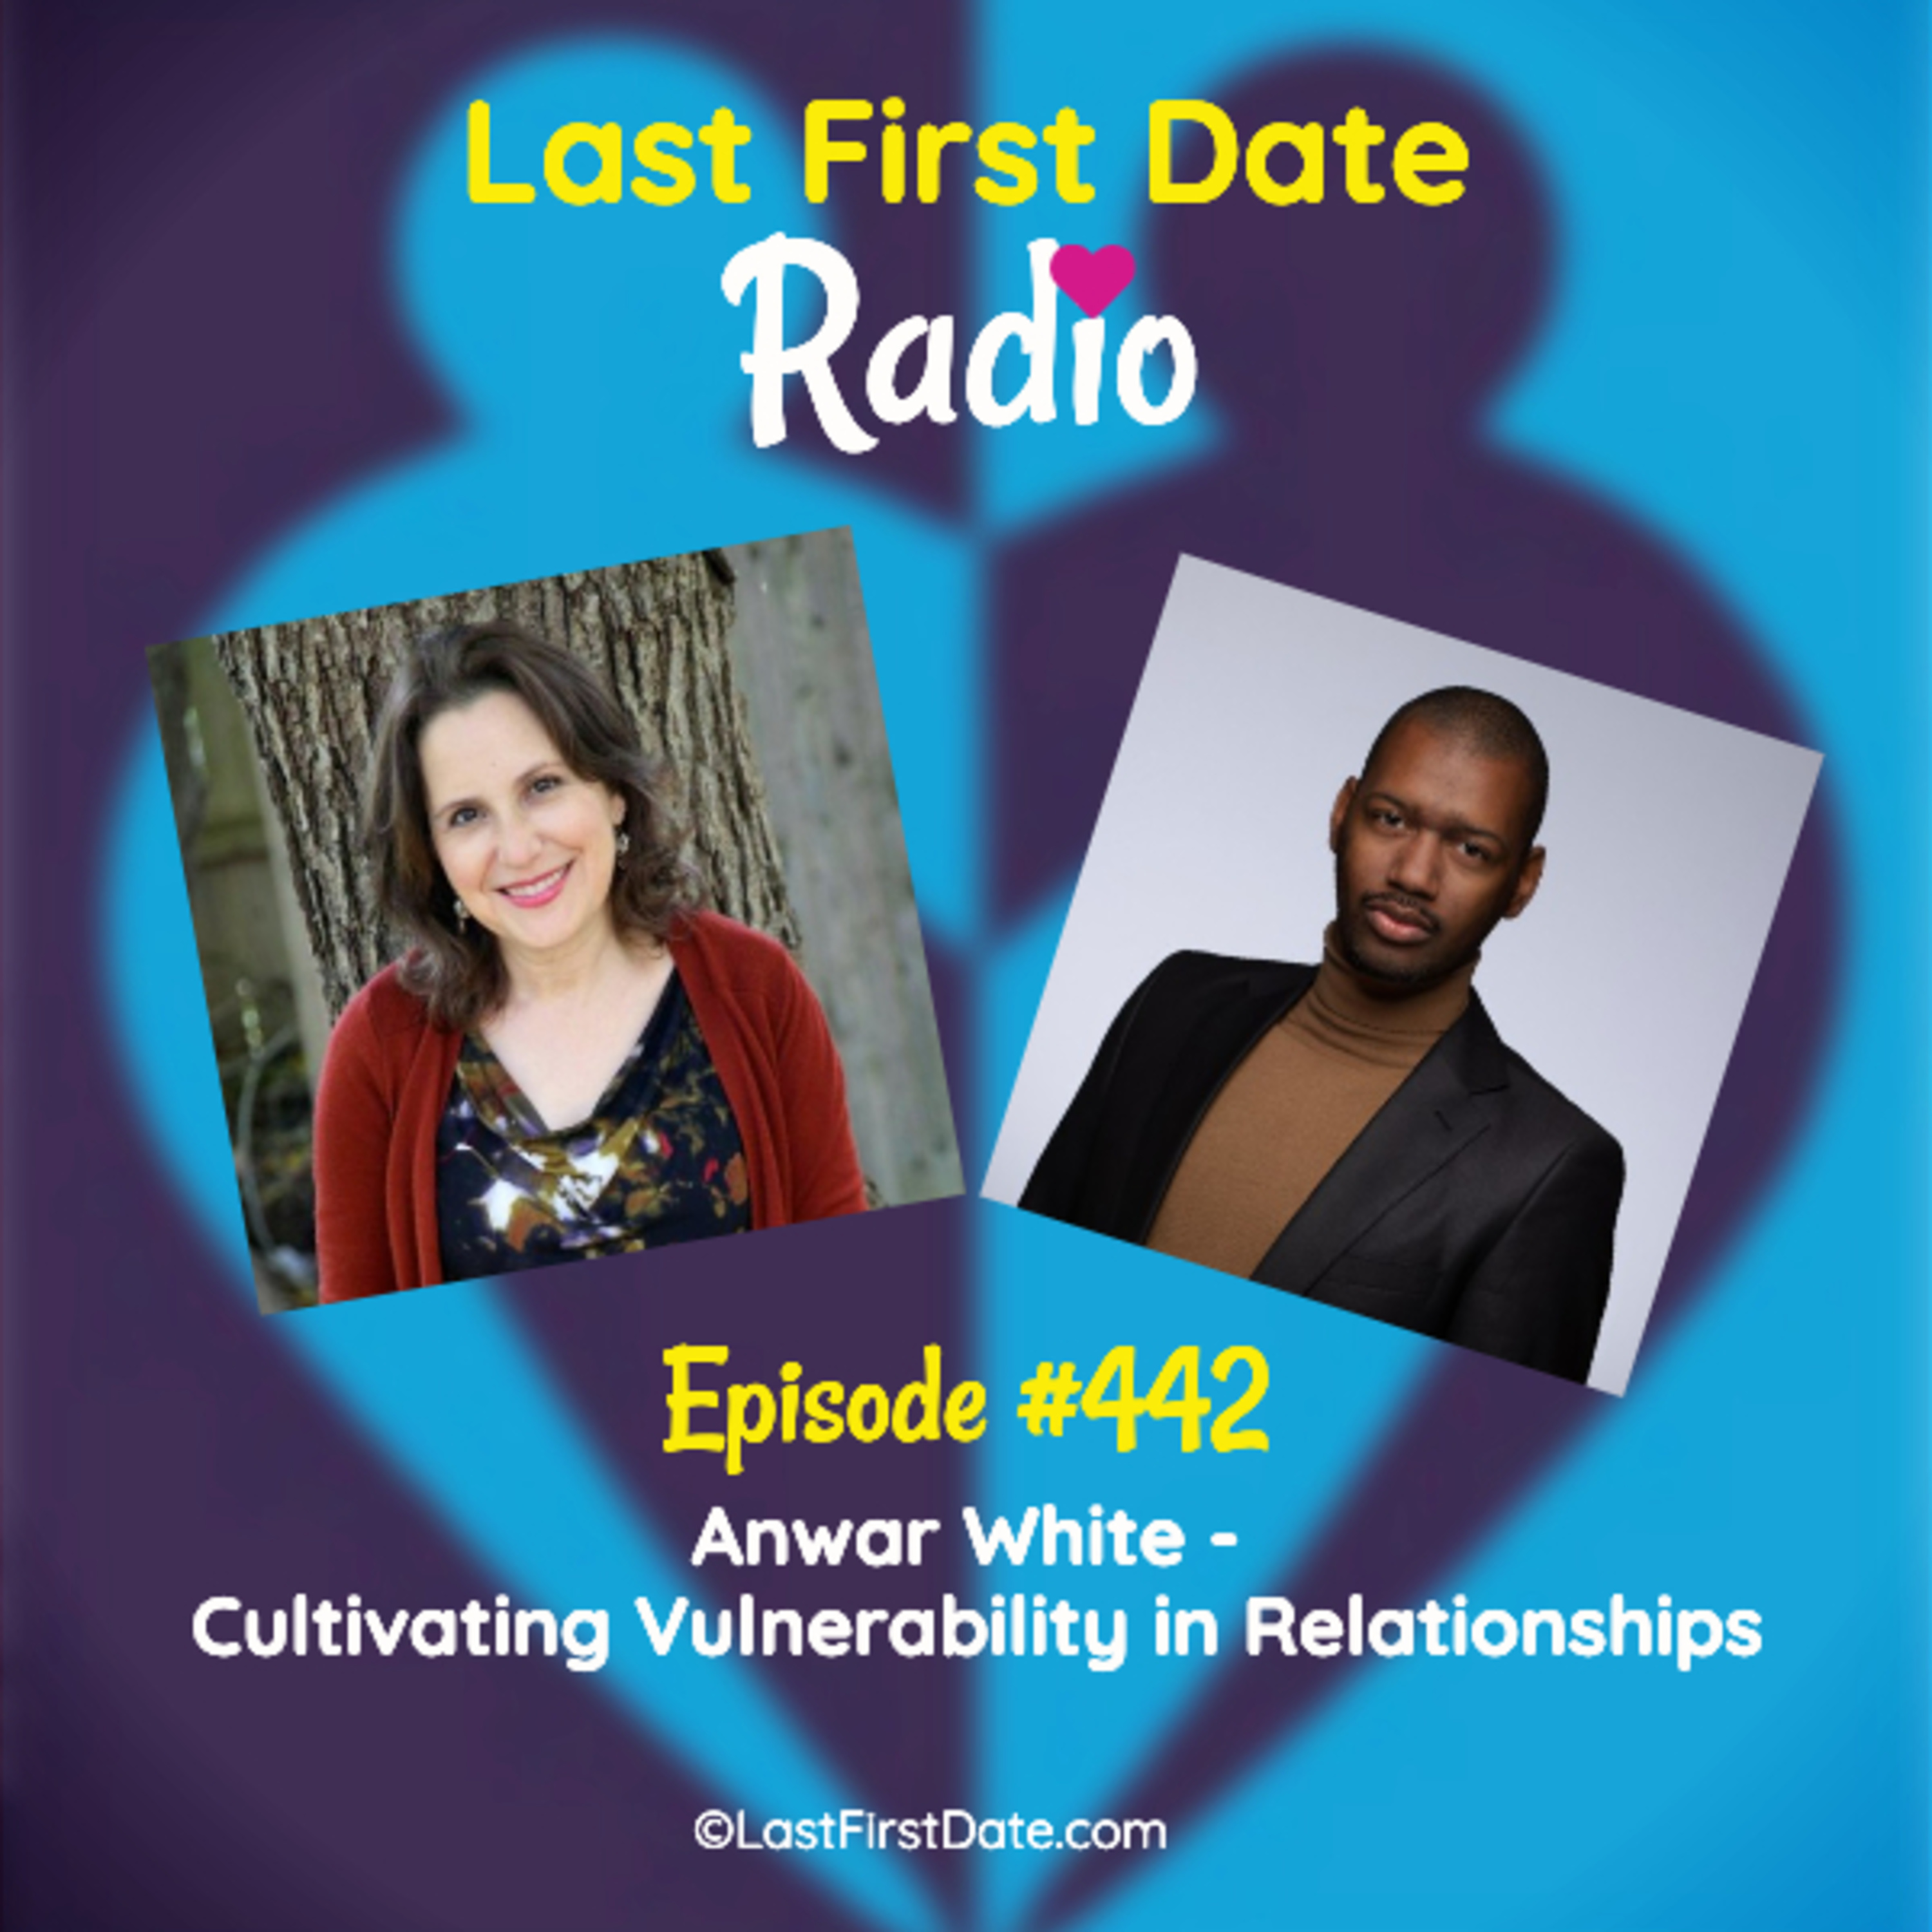 Last First Date Radio - EP 442: Anwar White - Cultivating Vulnerability in Relationships